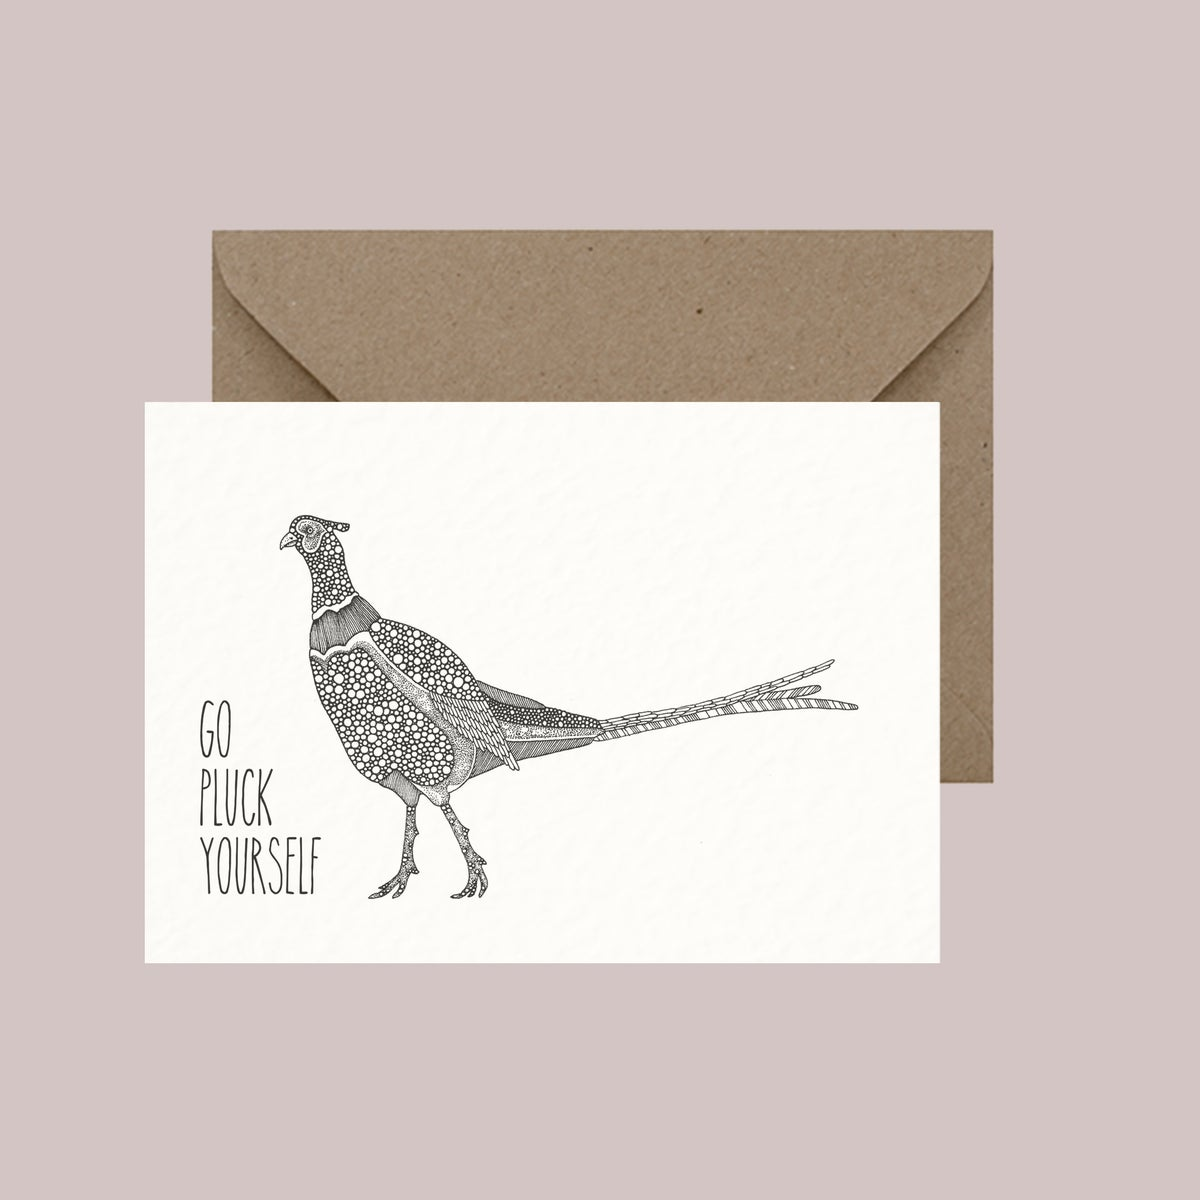 "Image of ""Go pluck yourself"" greeting card"